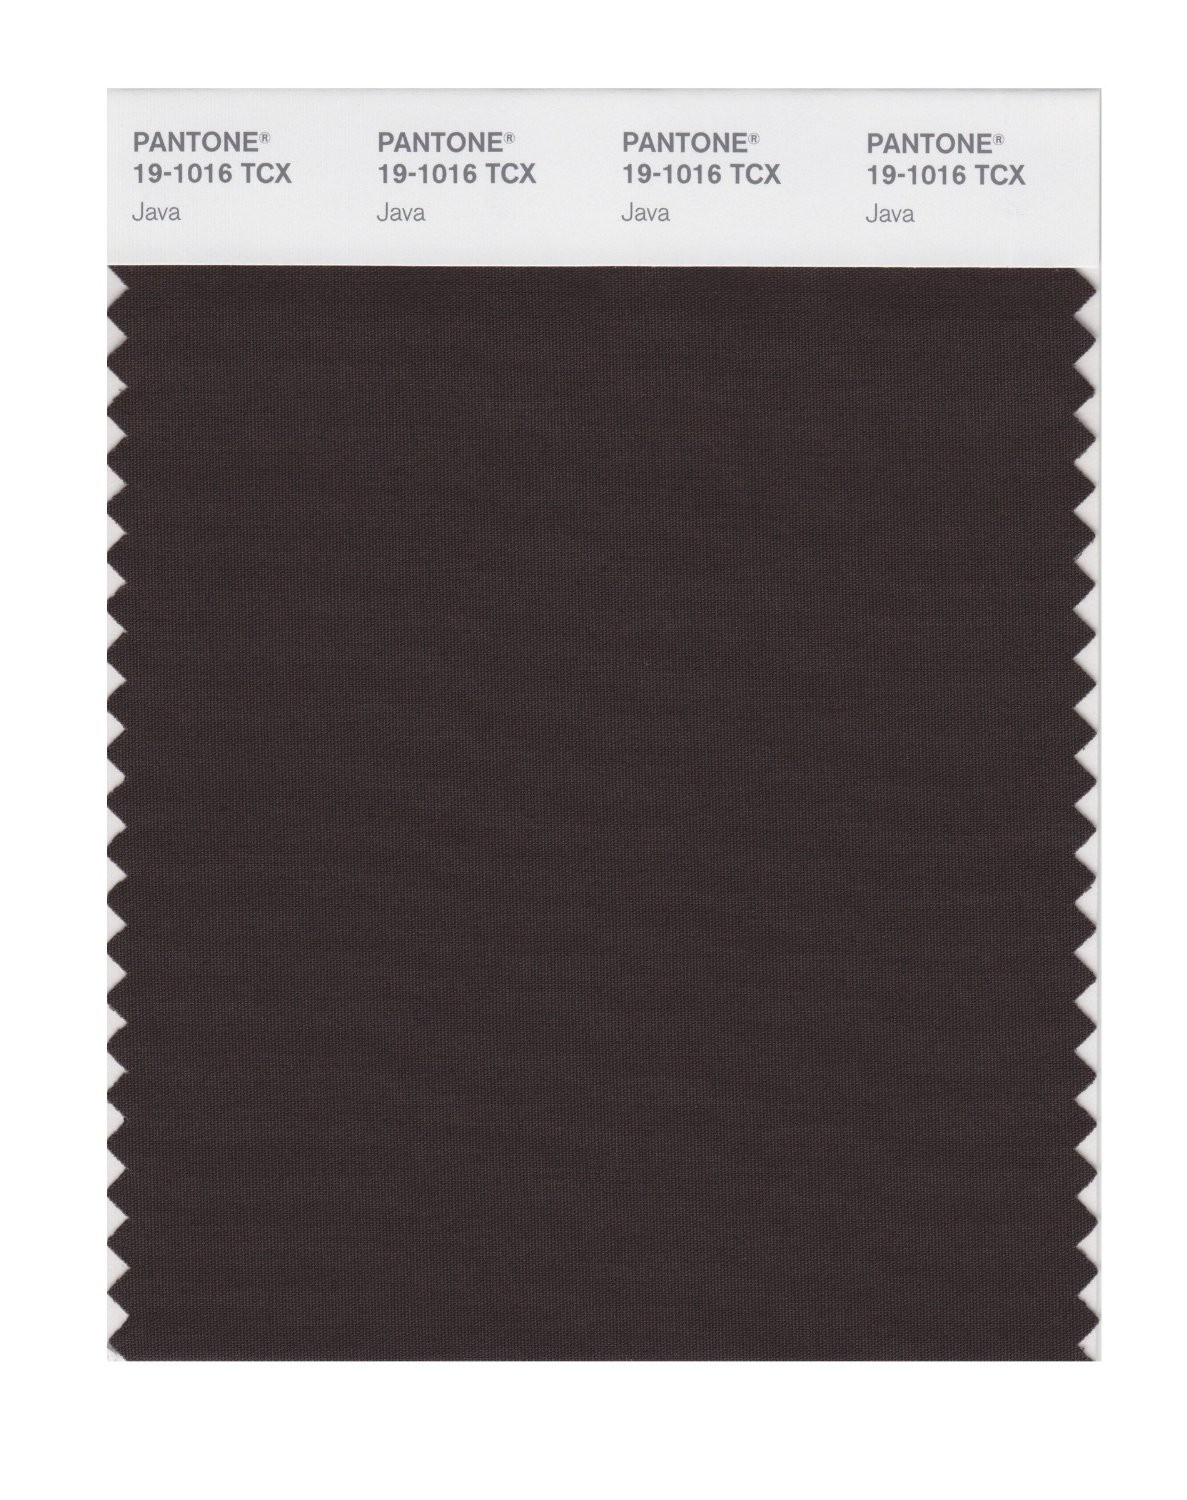 Pantone 19-1016 TCX Swatch Card Java